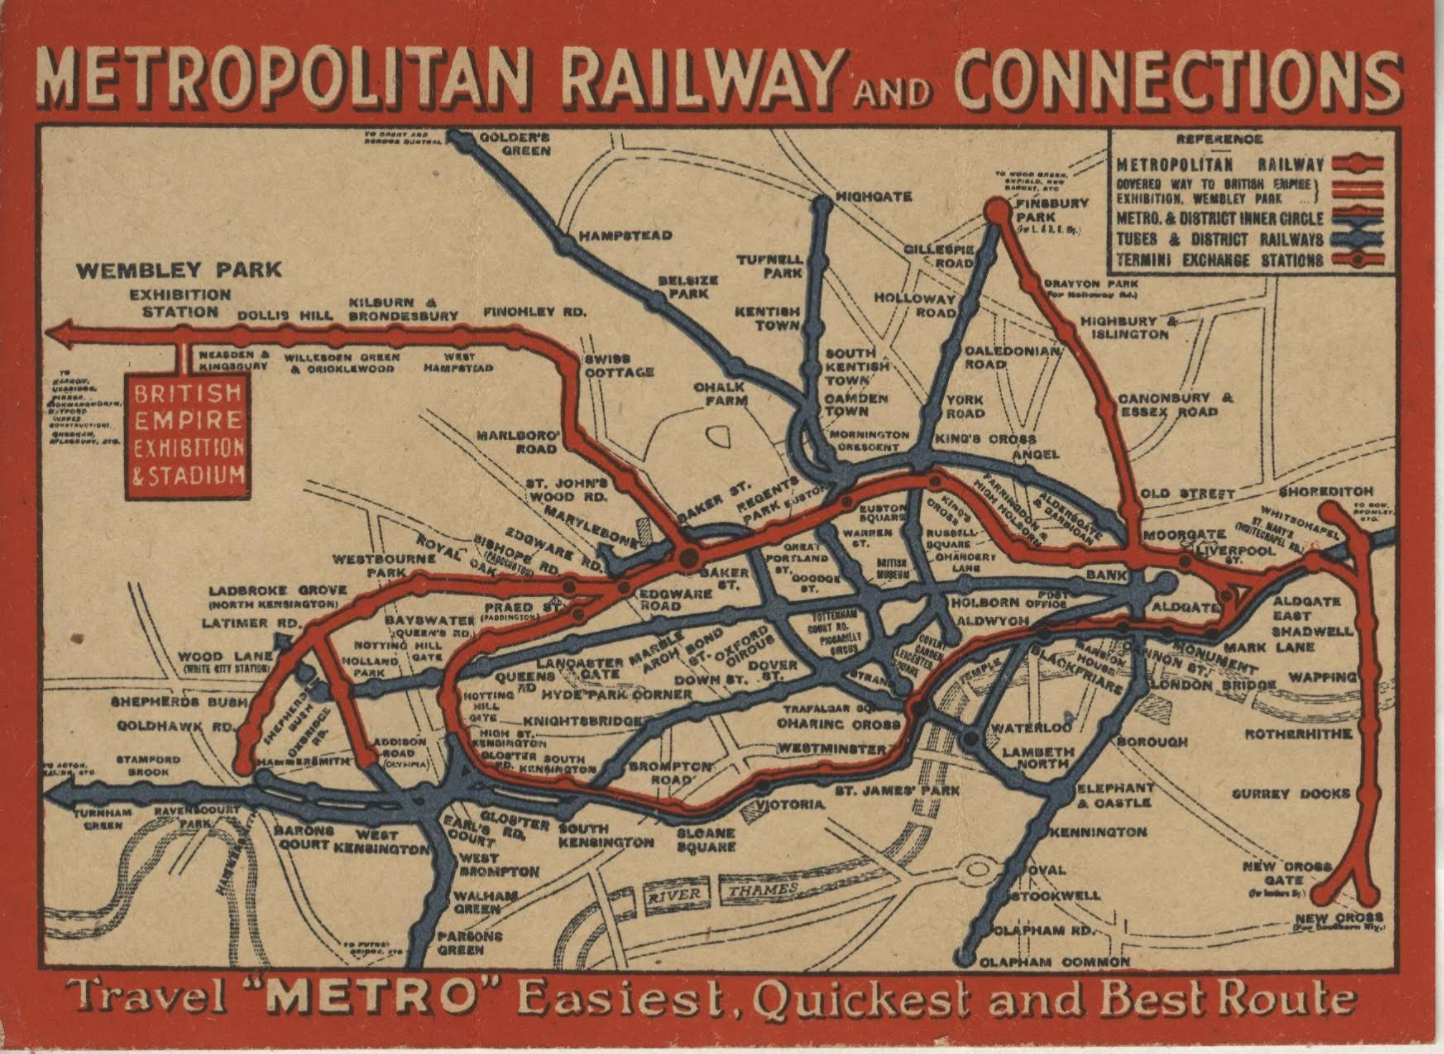 TfL builds digital archive to preserve London history